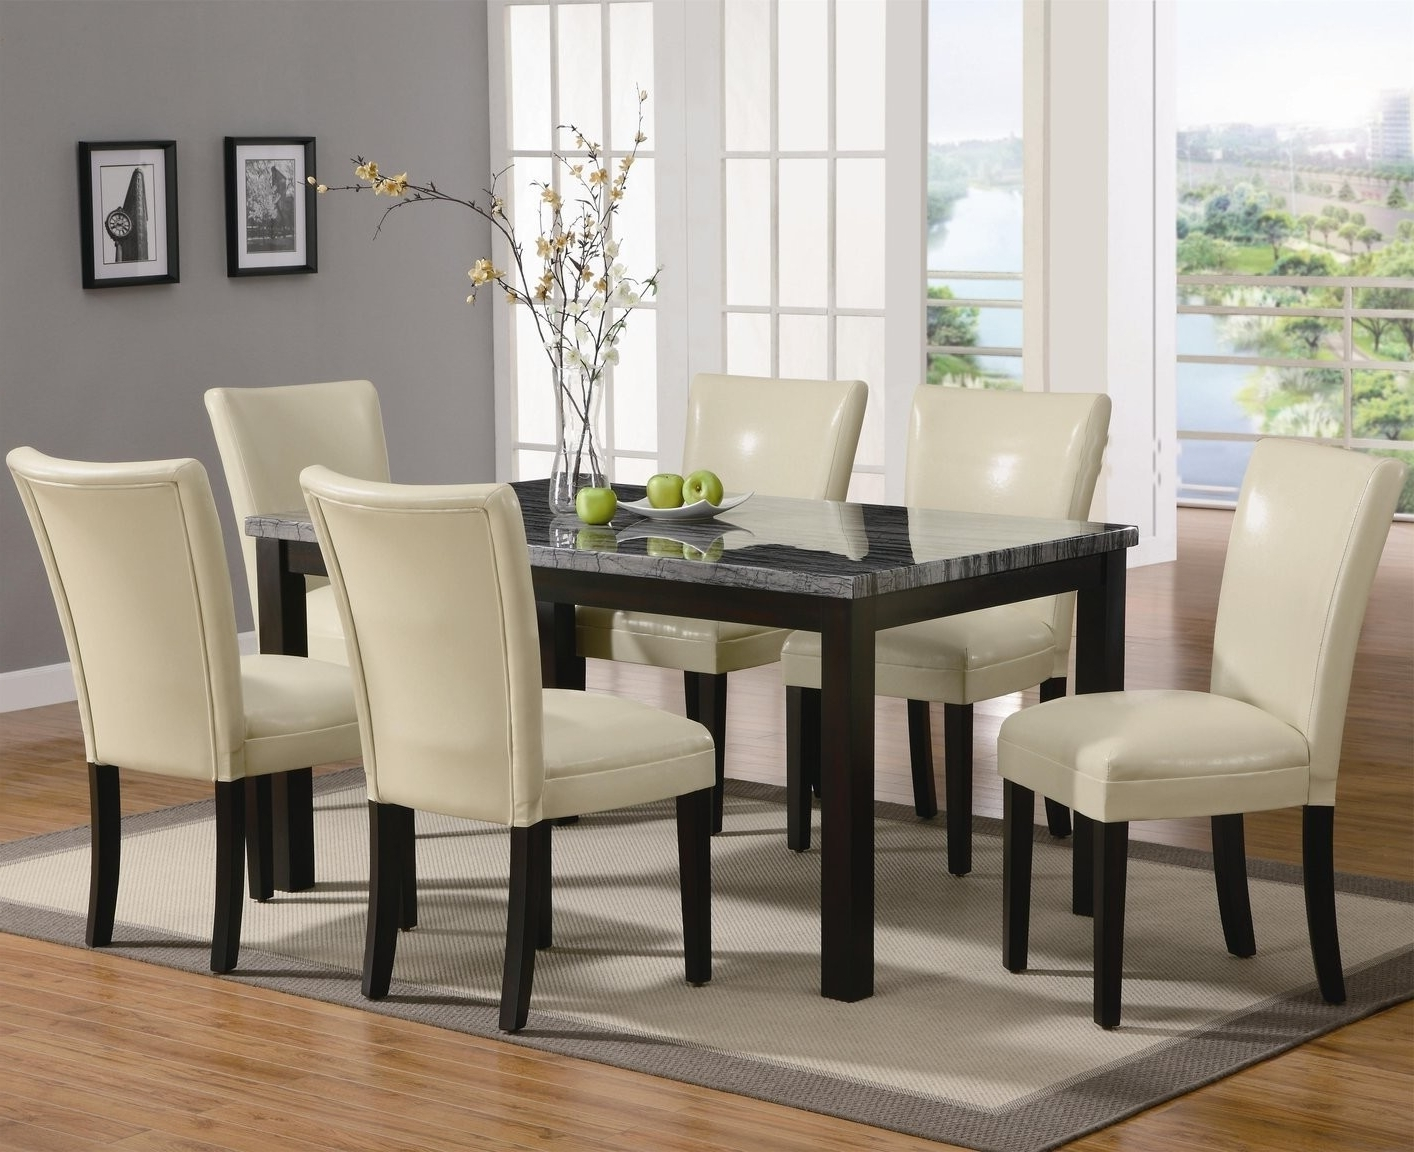 Leather Dining Room Chairs Throughout Fashionable Dining Sofa Chairs (View 16 of 20)